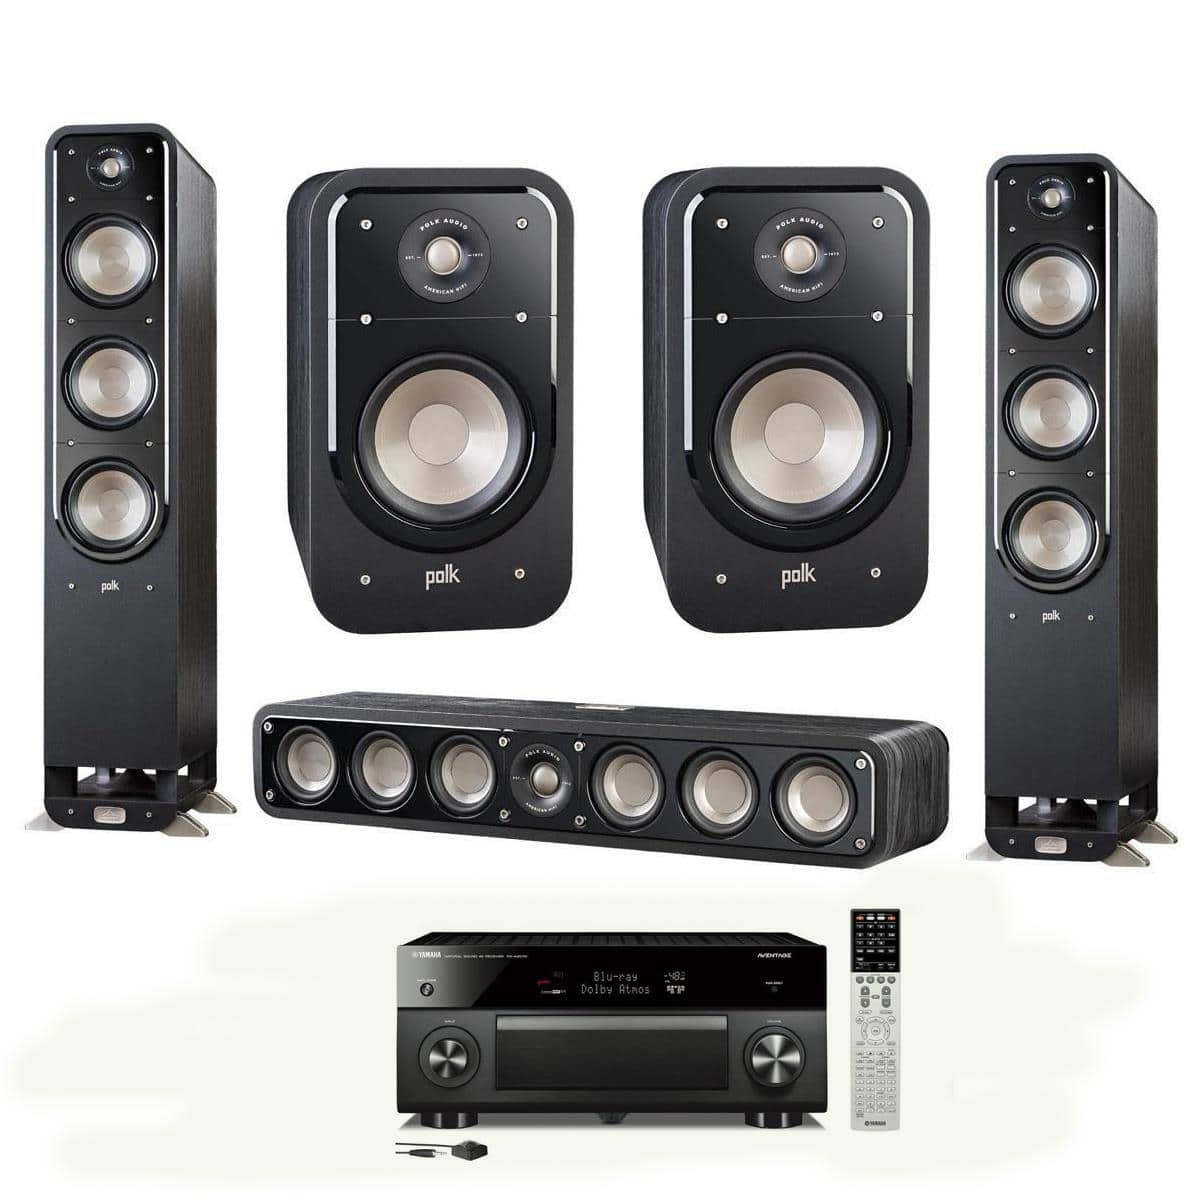 polk signature speakers yamaha rx 2070 receiver s60. Black Bedroom Furniture Sets. Home Design Ideas